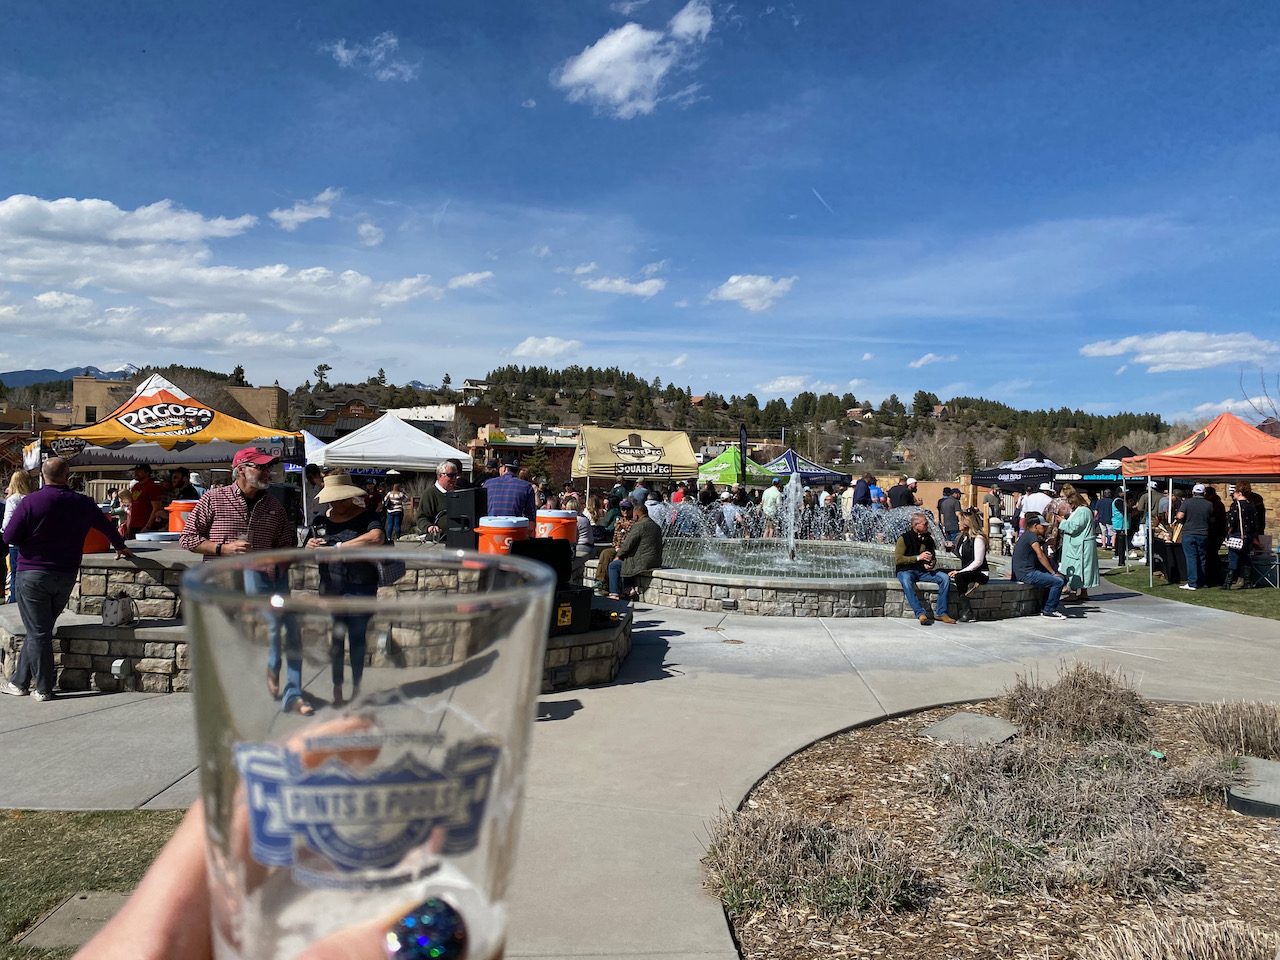 Pints and Pools Craft Beer Fest